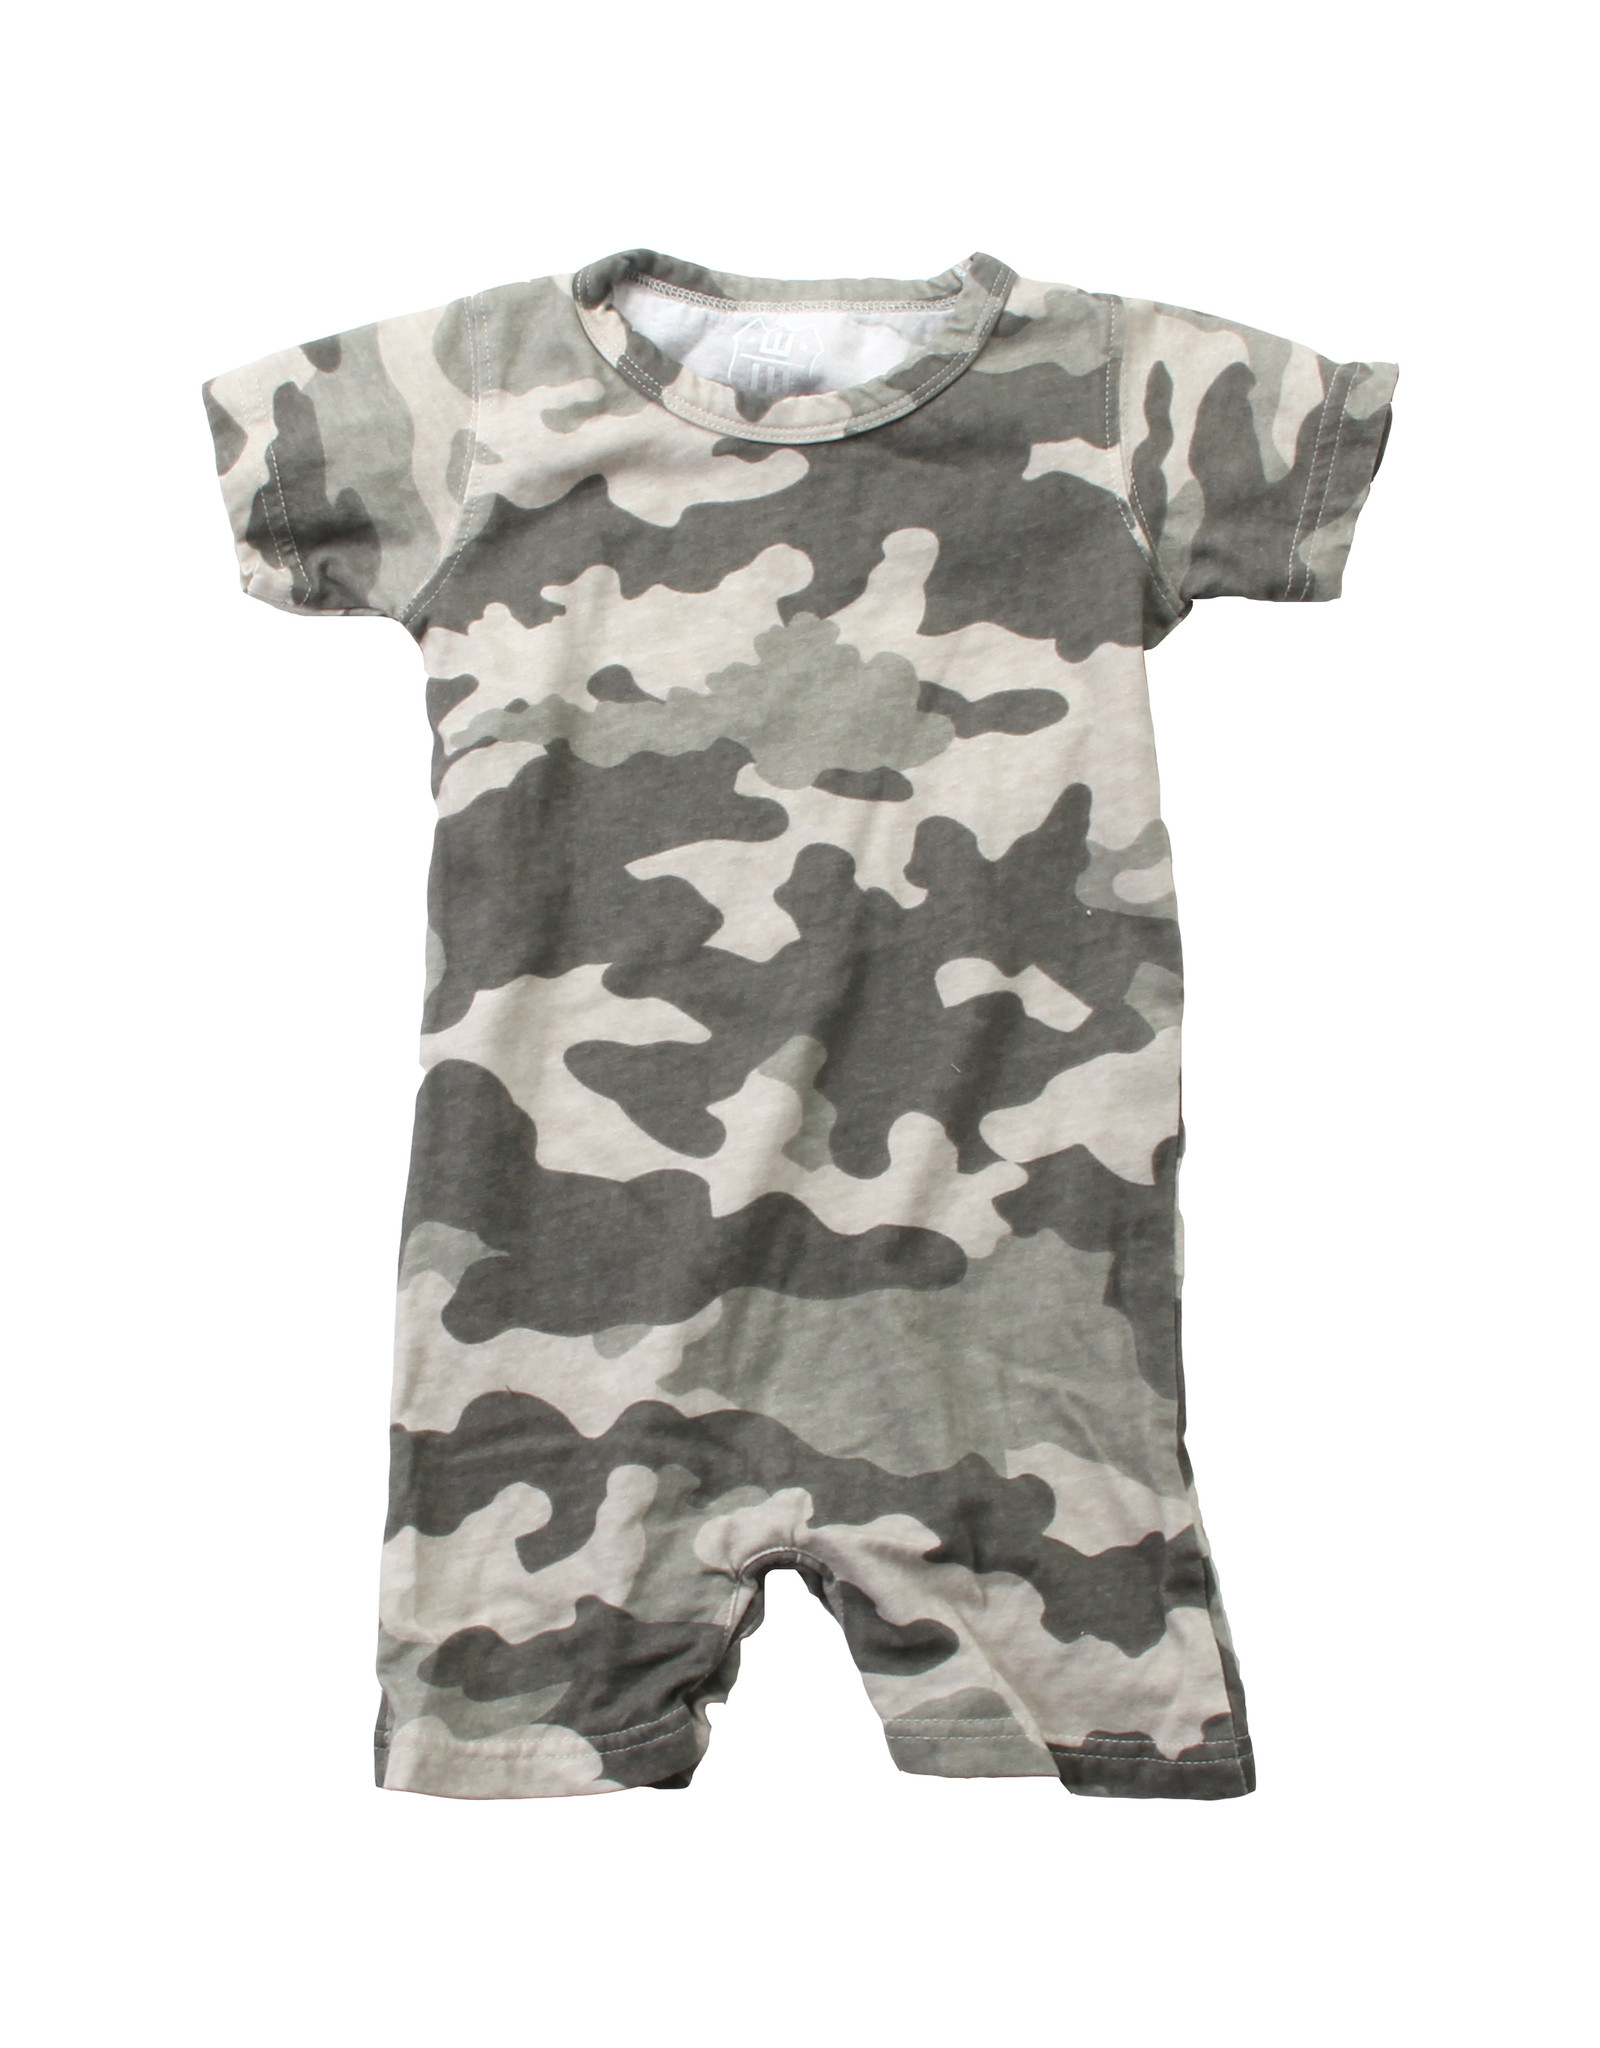 Wes & Willy Short Sleeve Camo Romper